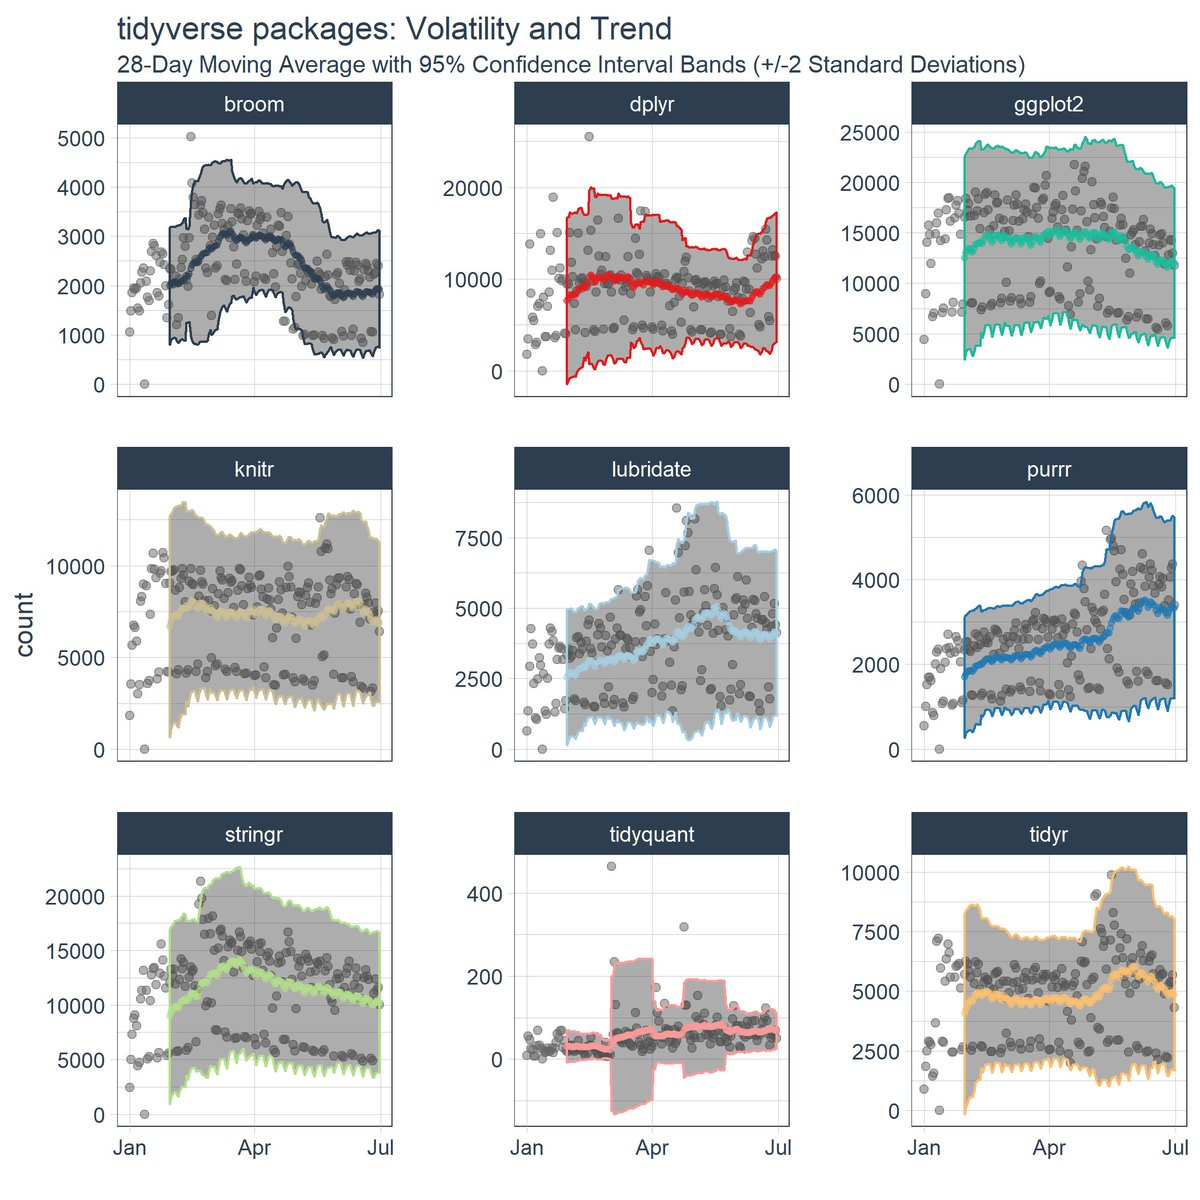 #rstats: Tidy Time Series Analysis, Part 2: Rolling Functions #DataScience  http:// buff.ly/2uPiCKA  &nbsp;  <br>http://pic.twitter.com/BZkCorOYfm